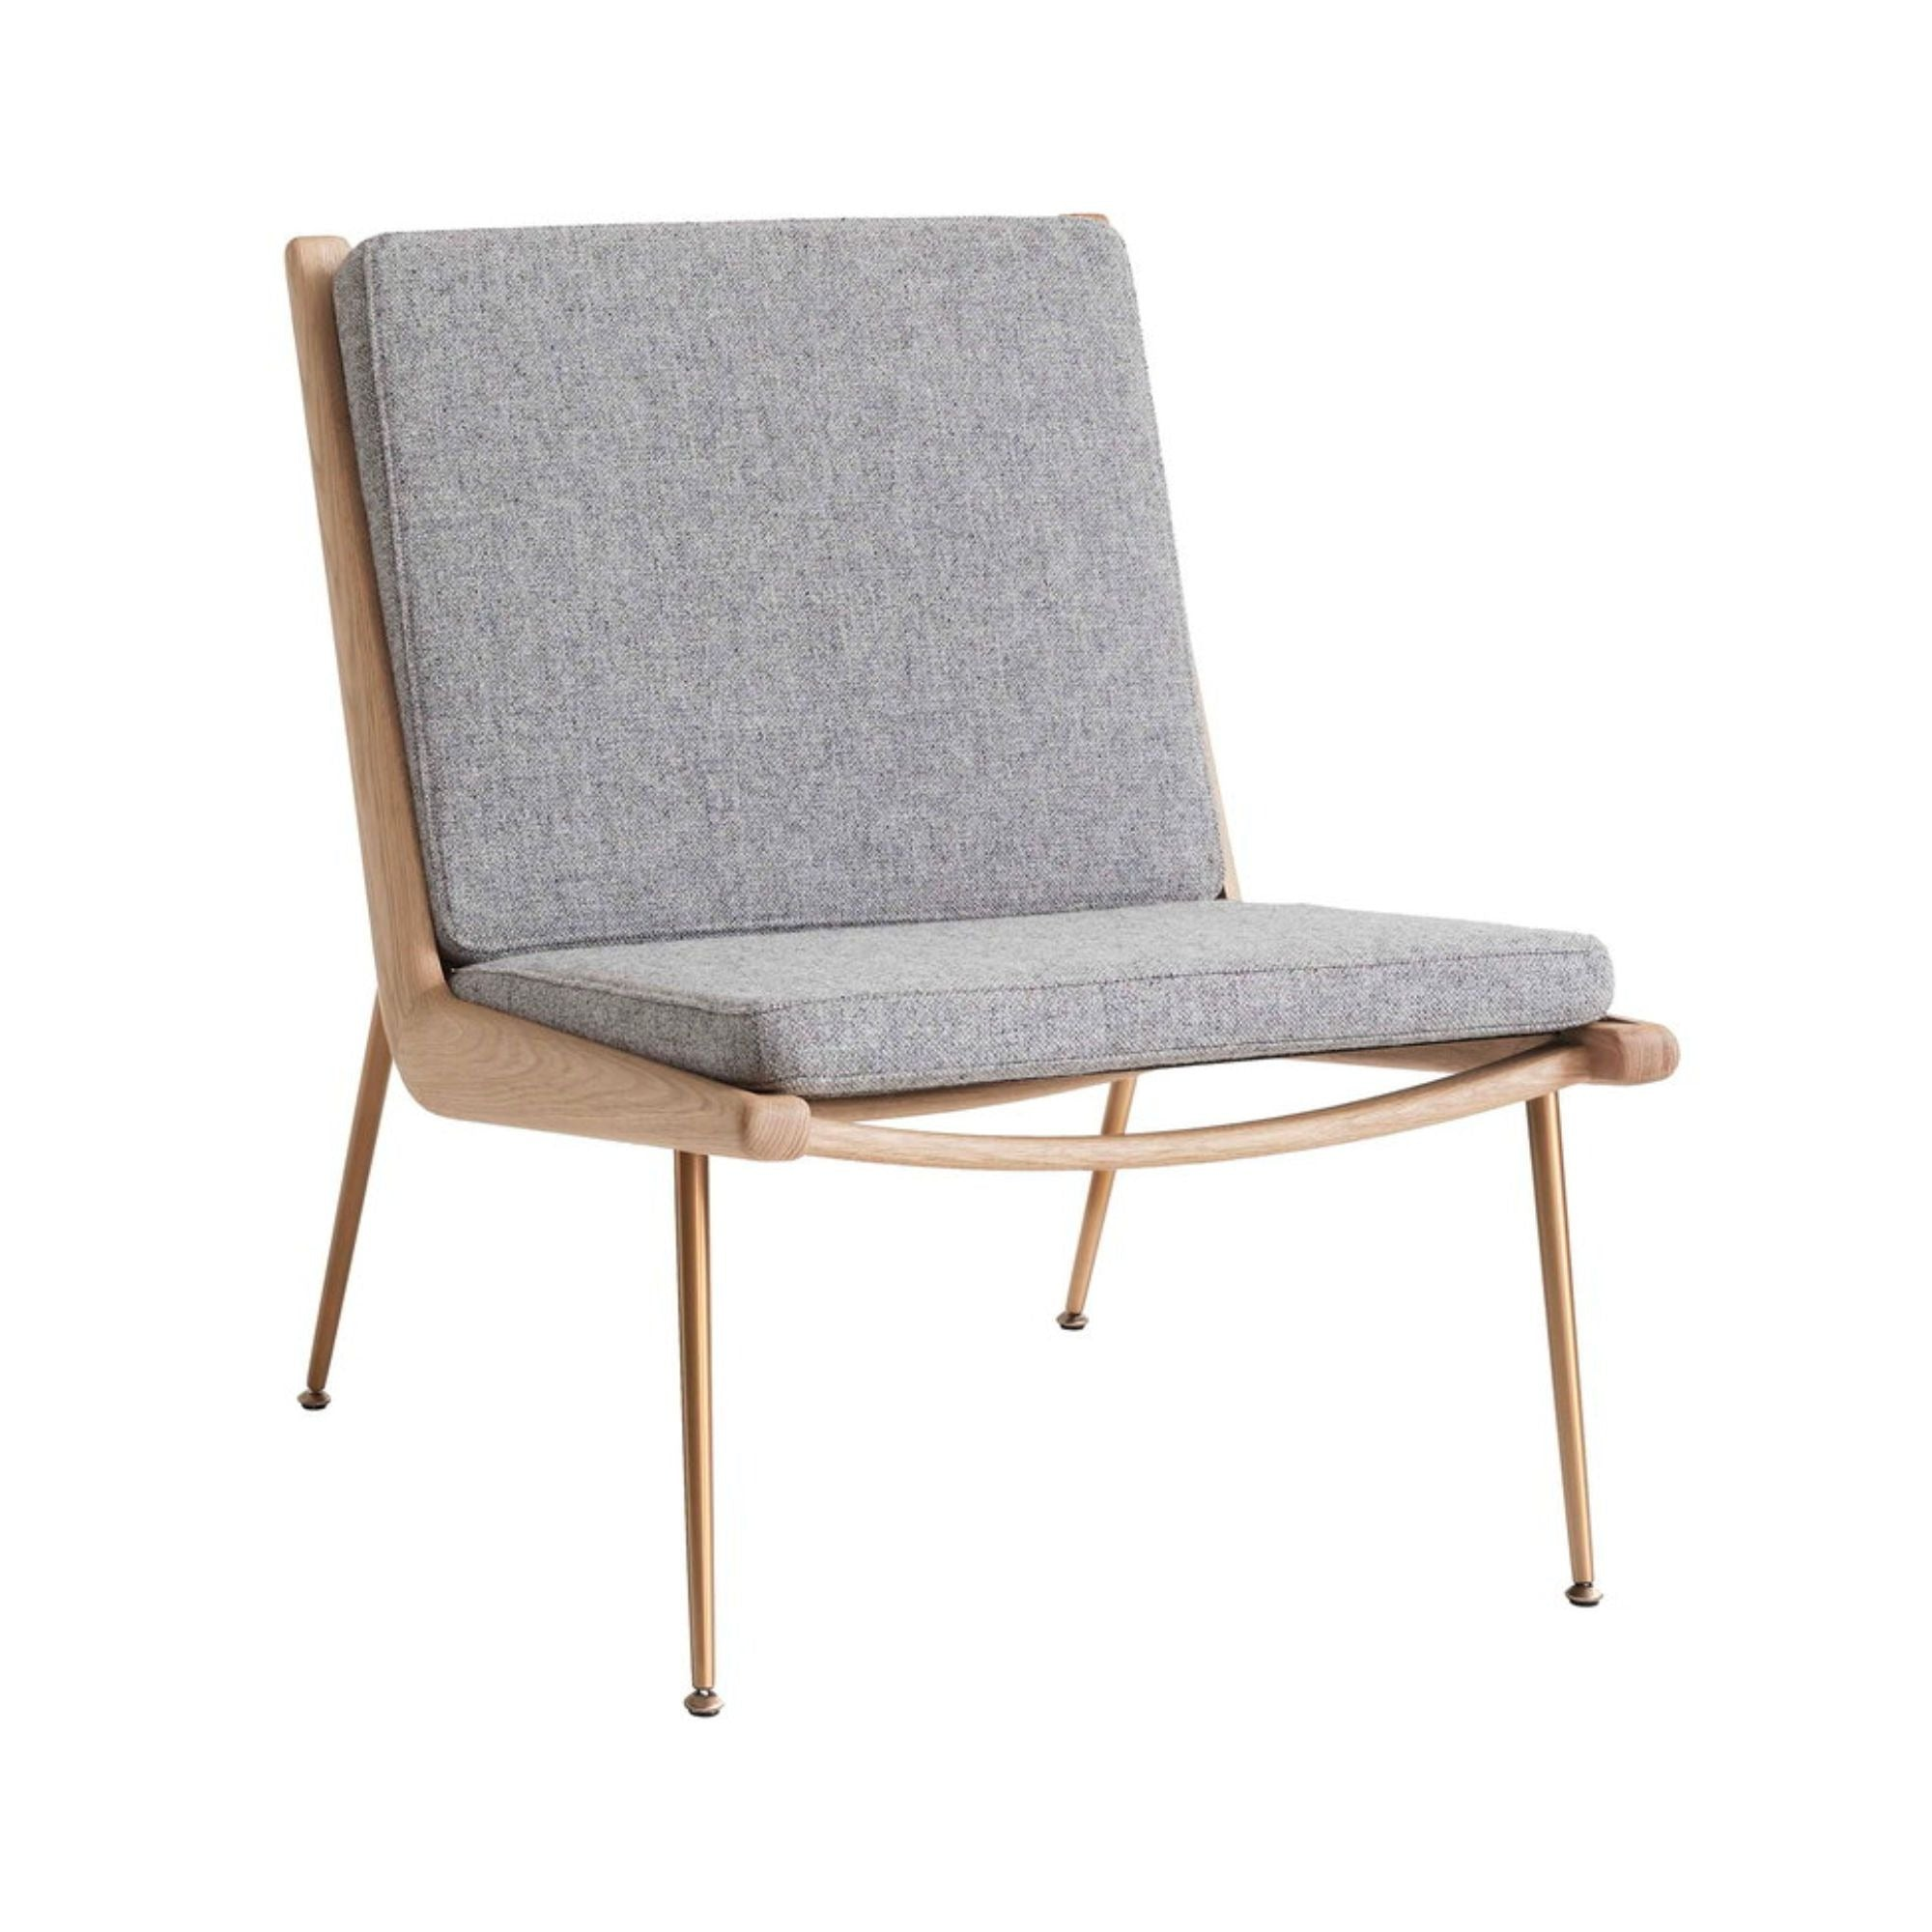 &Tradition HM1 Boomerang Lounge Chair , Hallindal 130-White Oiled Oak